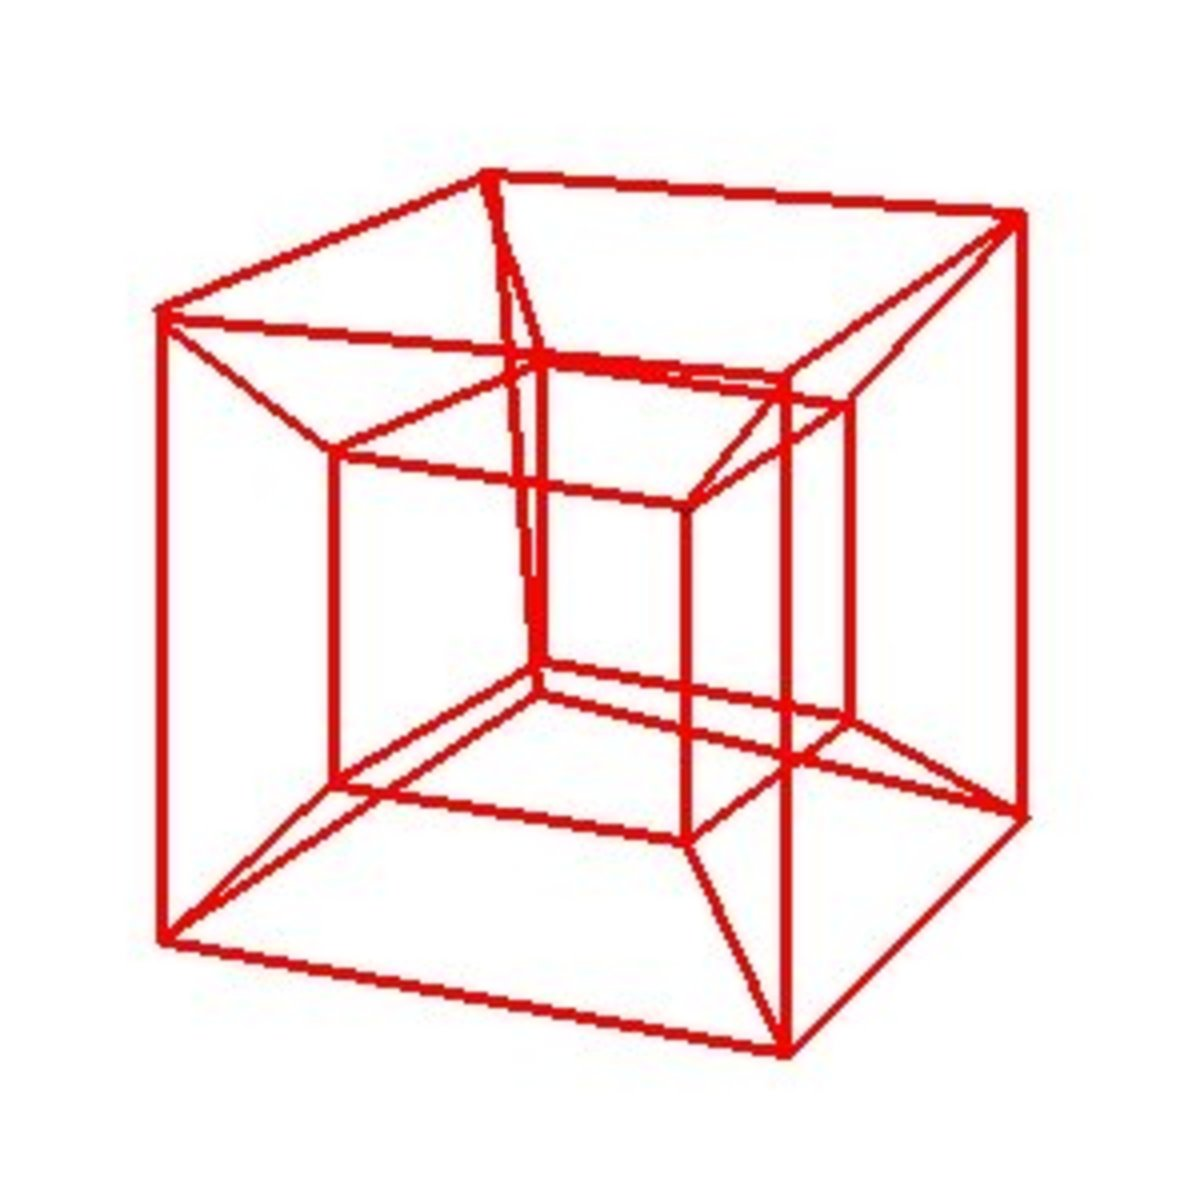 """In geometry, the tesseract, also called an 8-cell or regular octachoron or cubic prism, is the four-dimensional analog of the cube."""